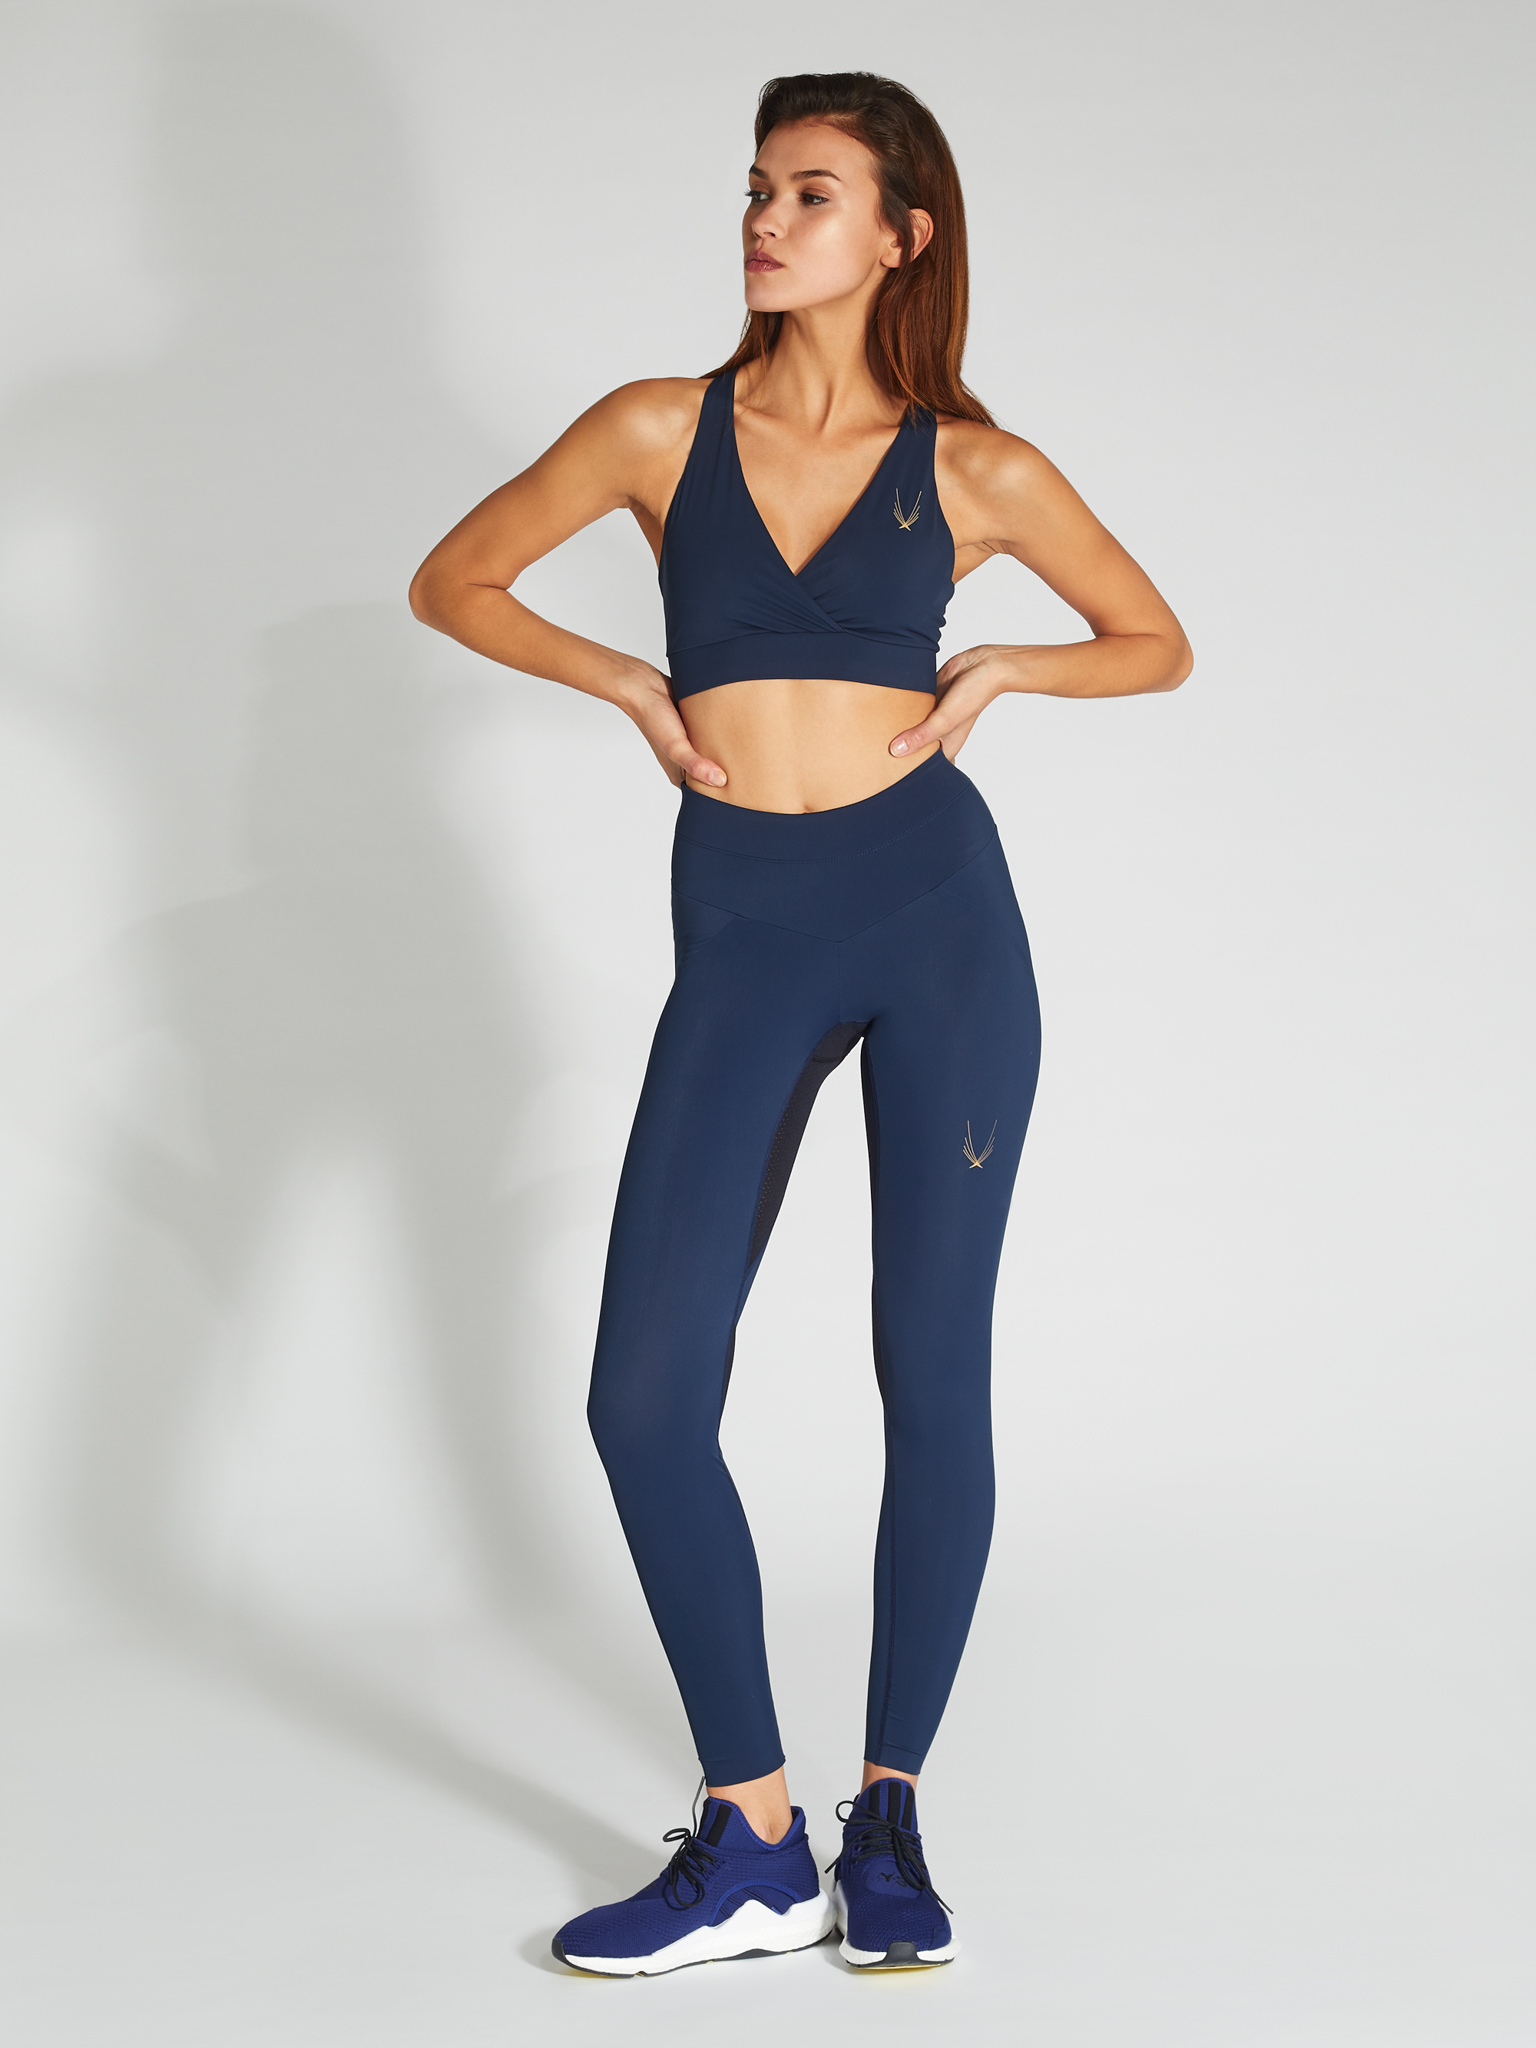 AIRCUT_BRA_V2_LEGGINGS_MARINE5555_3443.jpg